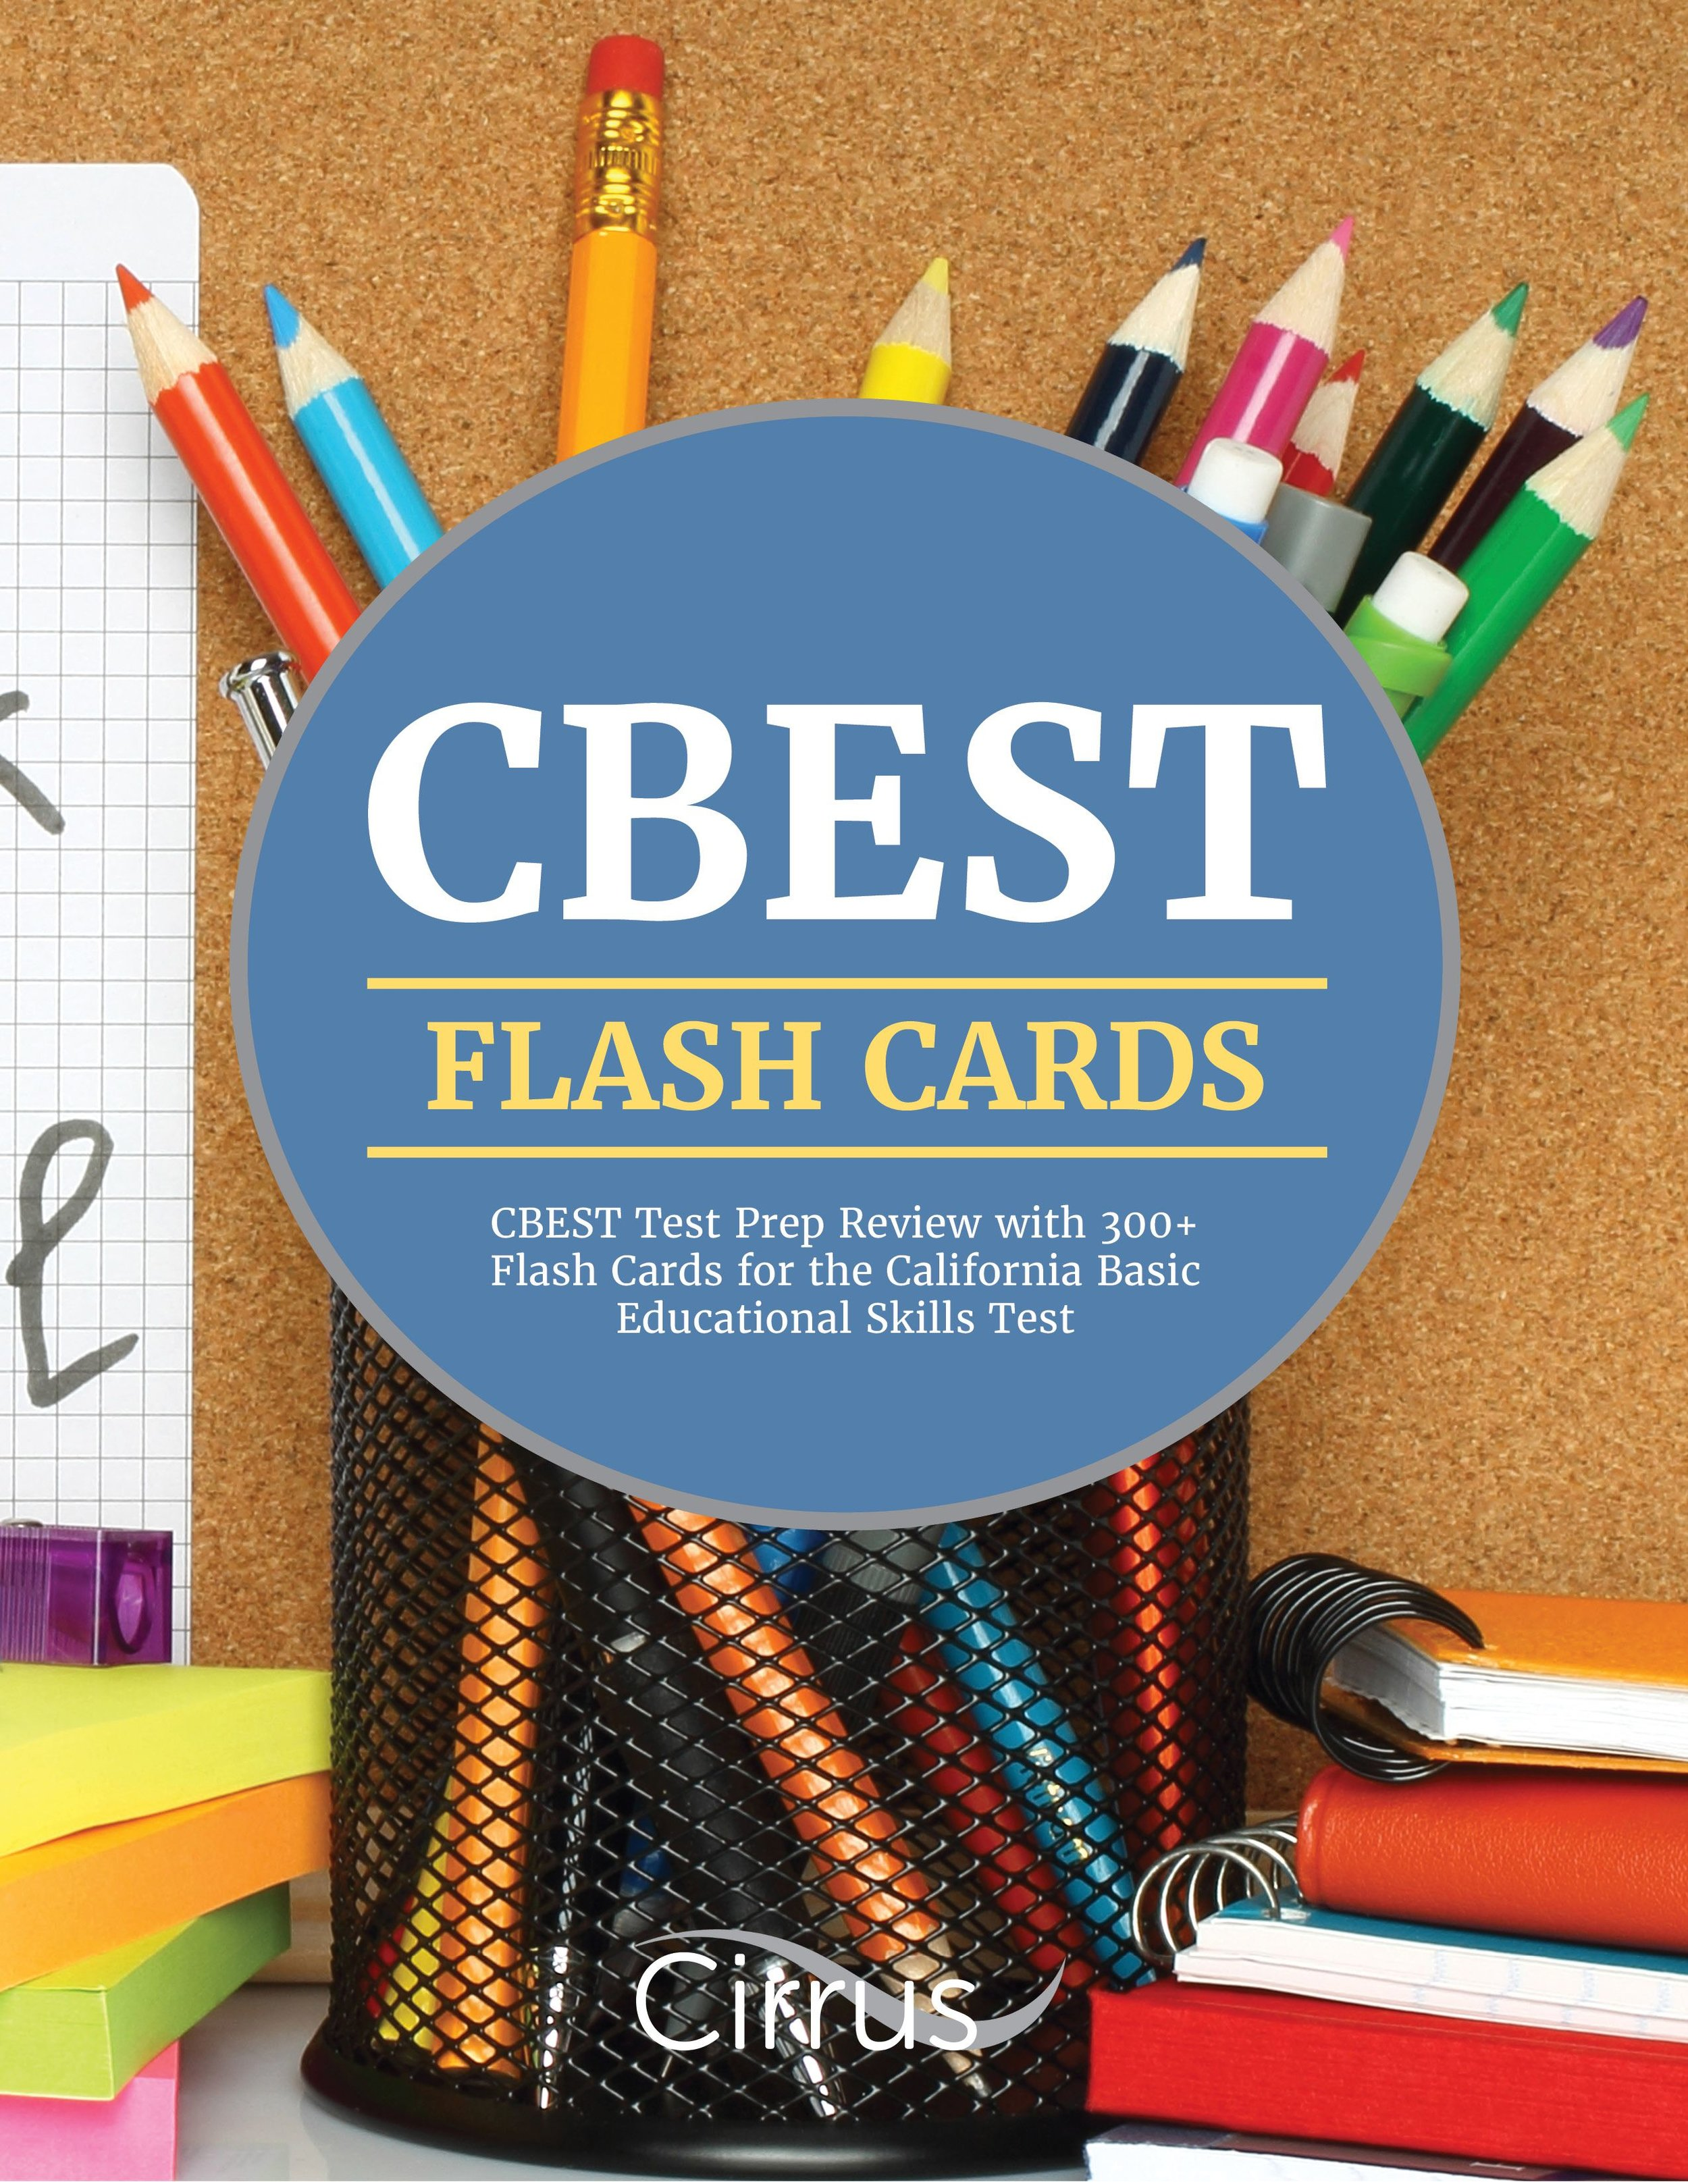 CBEST Review Book with 300+ Flash Cards